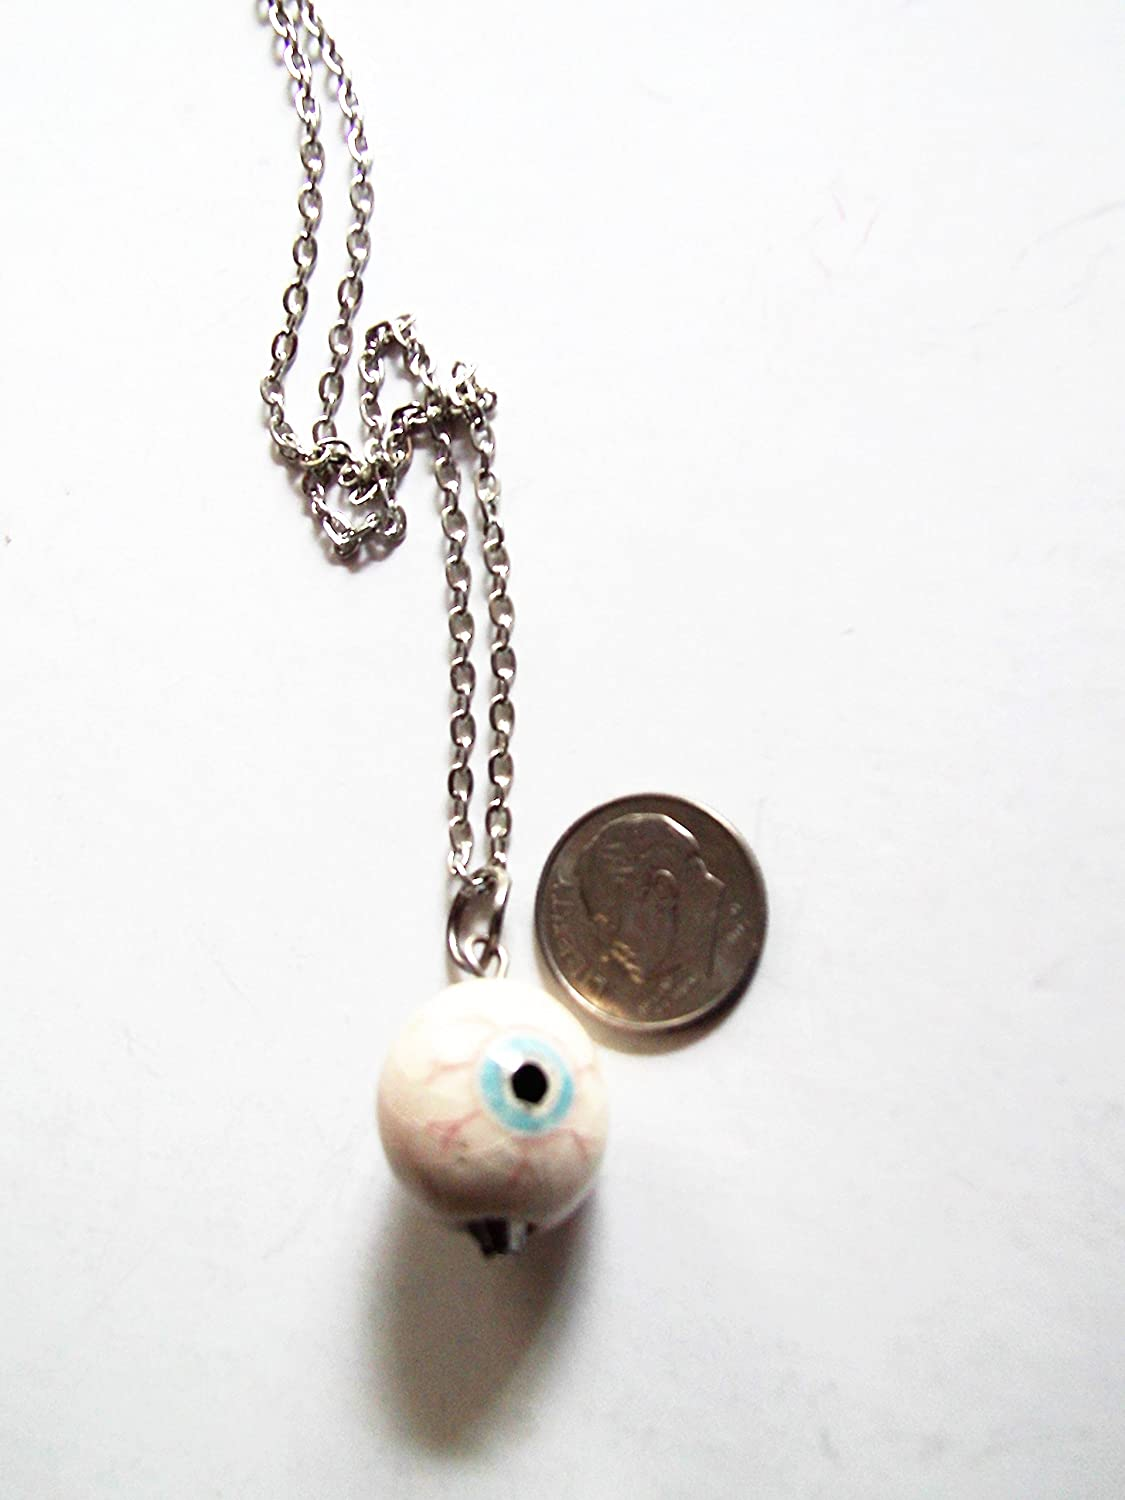 necklace fullxfull eyeball blinking listing il zoom doll eye real